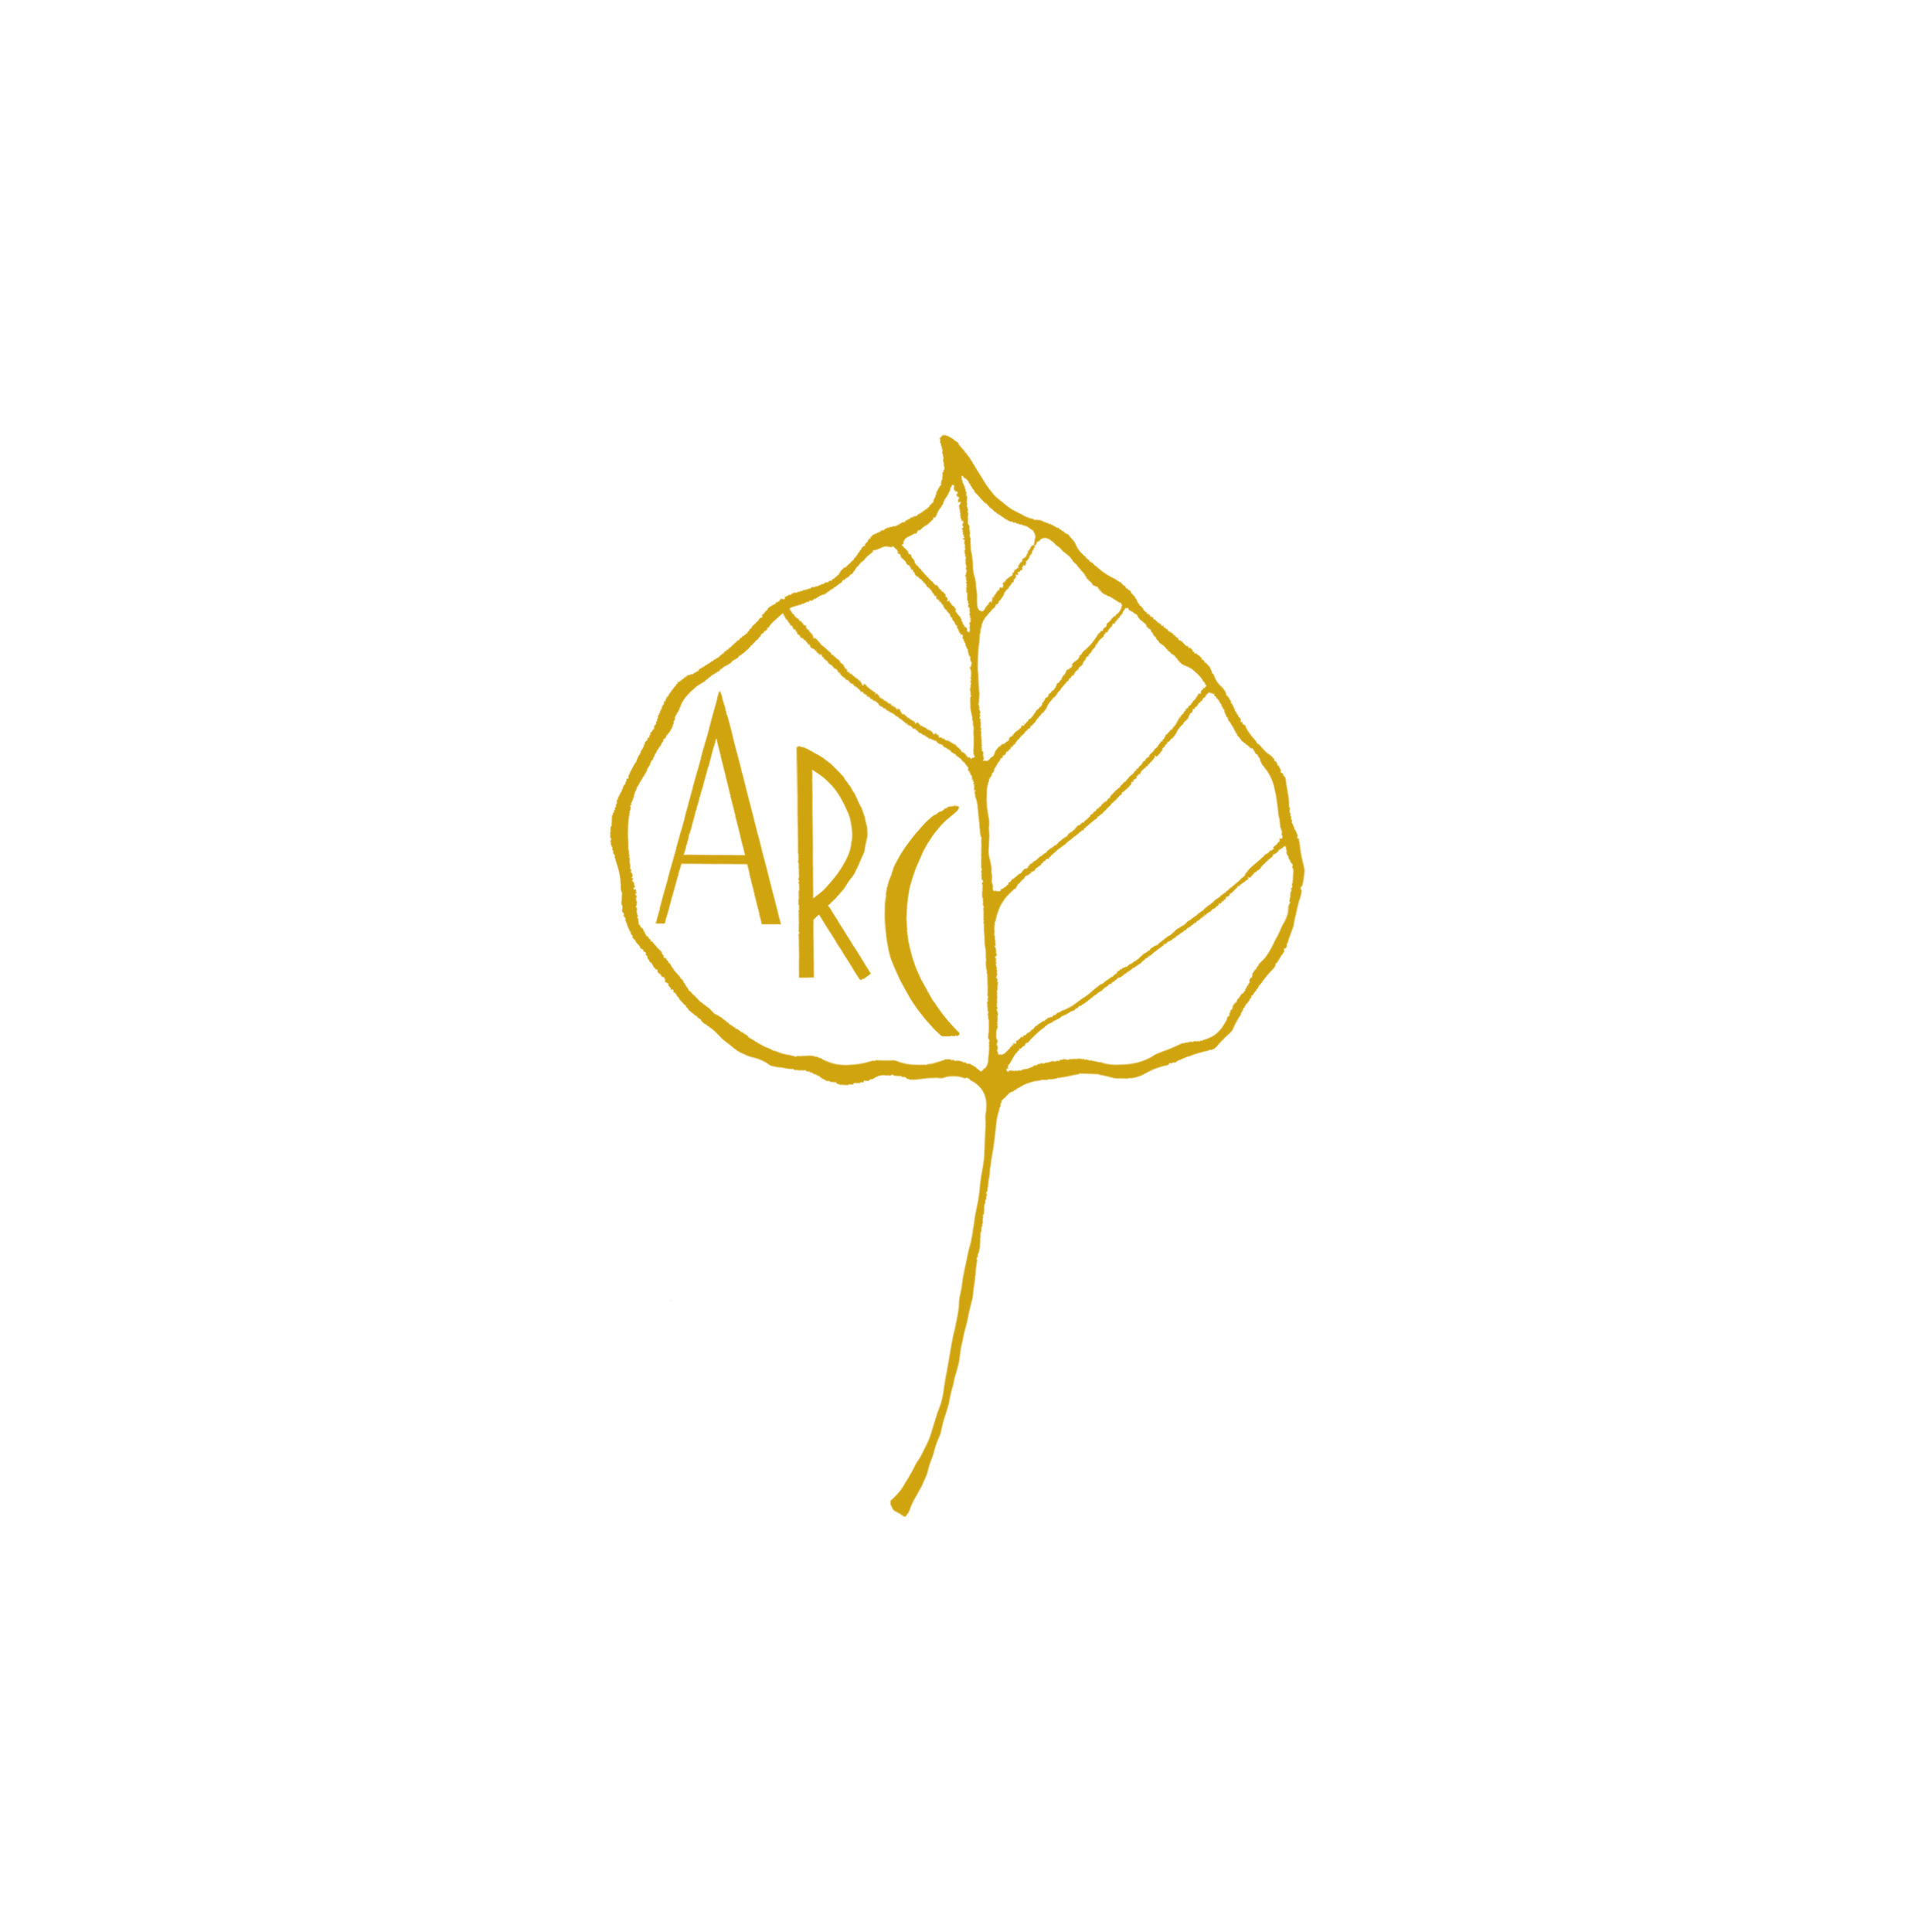 ARC Leaf Gold High Res.jpg